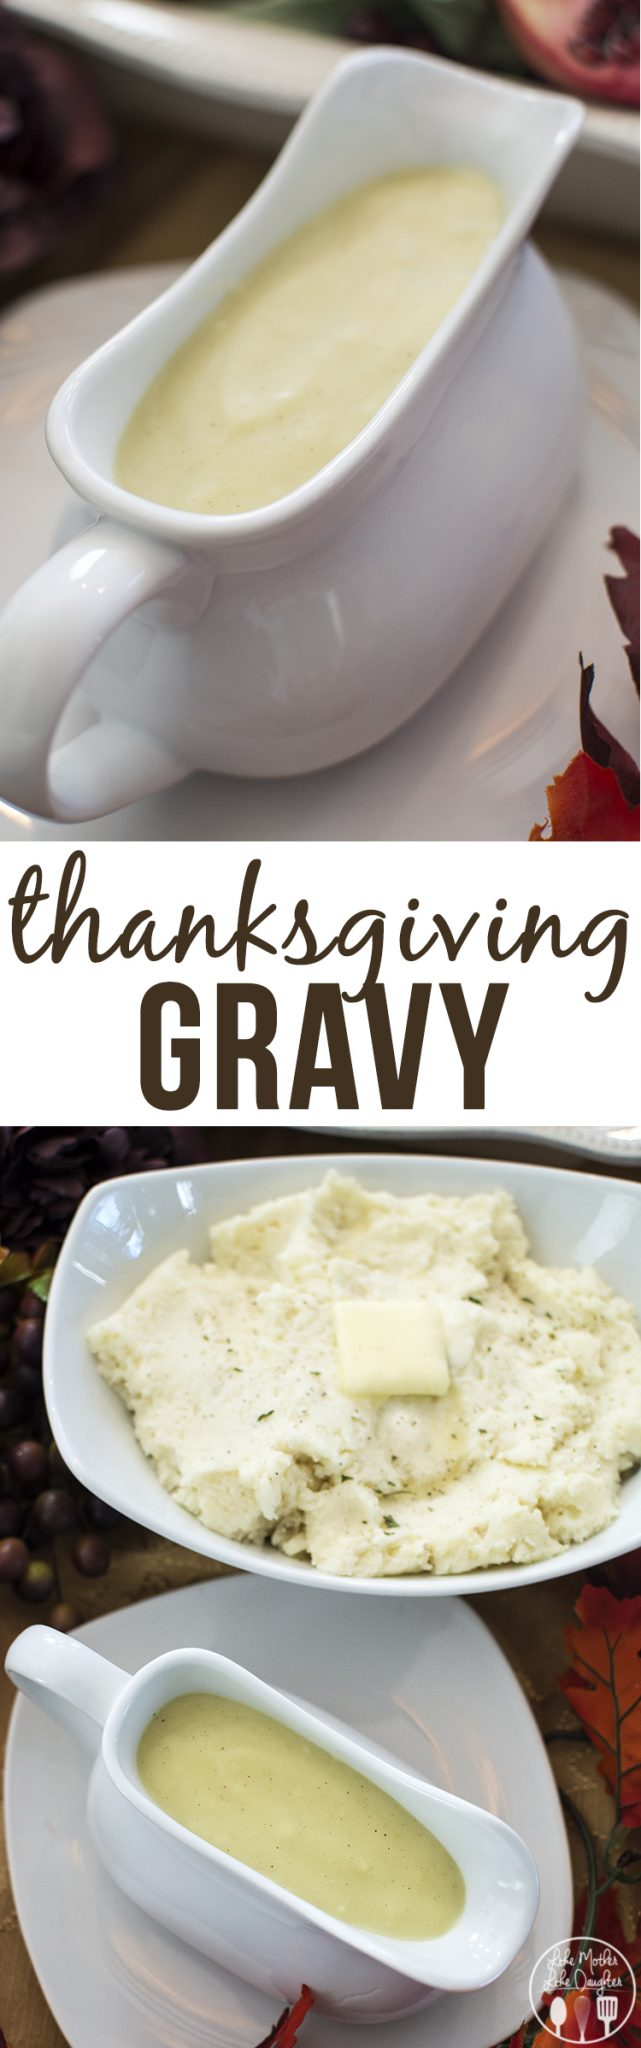 Thanksgiving Gravy Like Mother Like Daughter